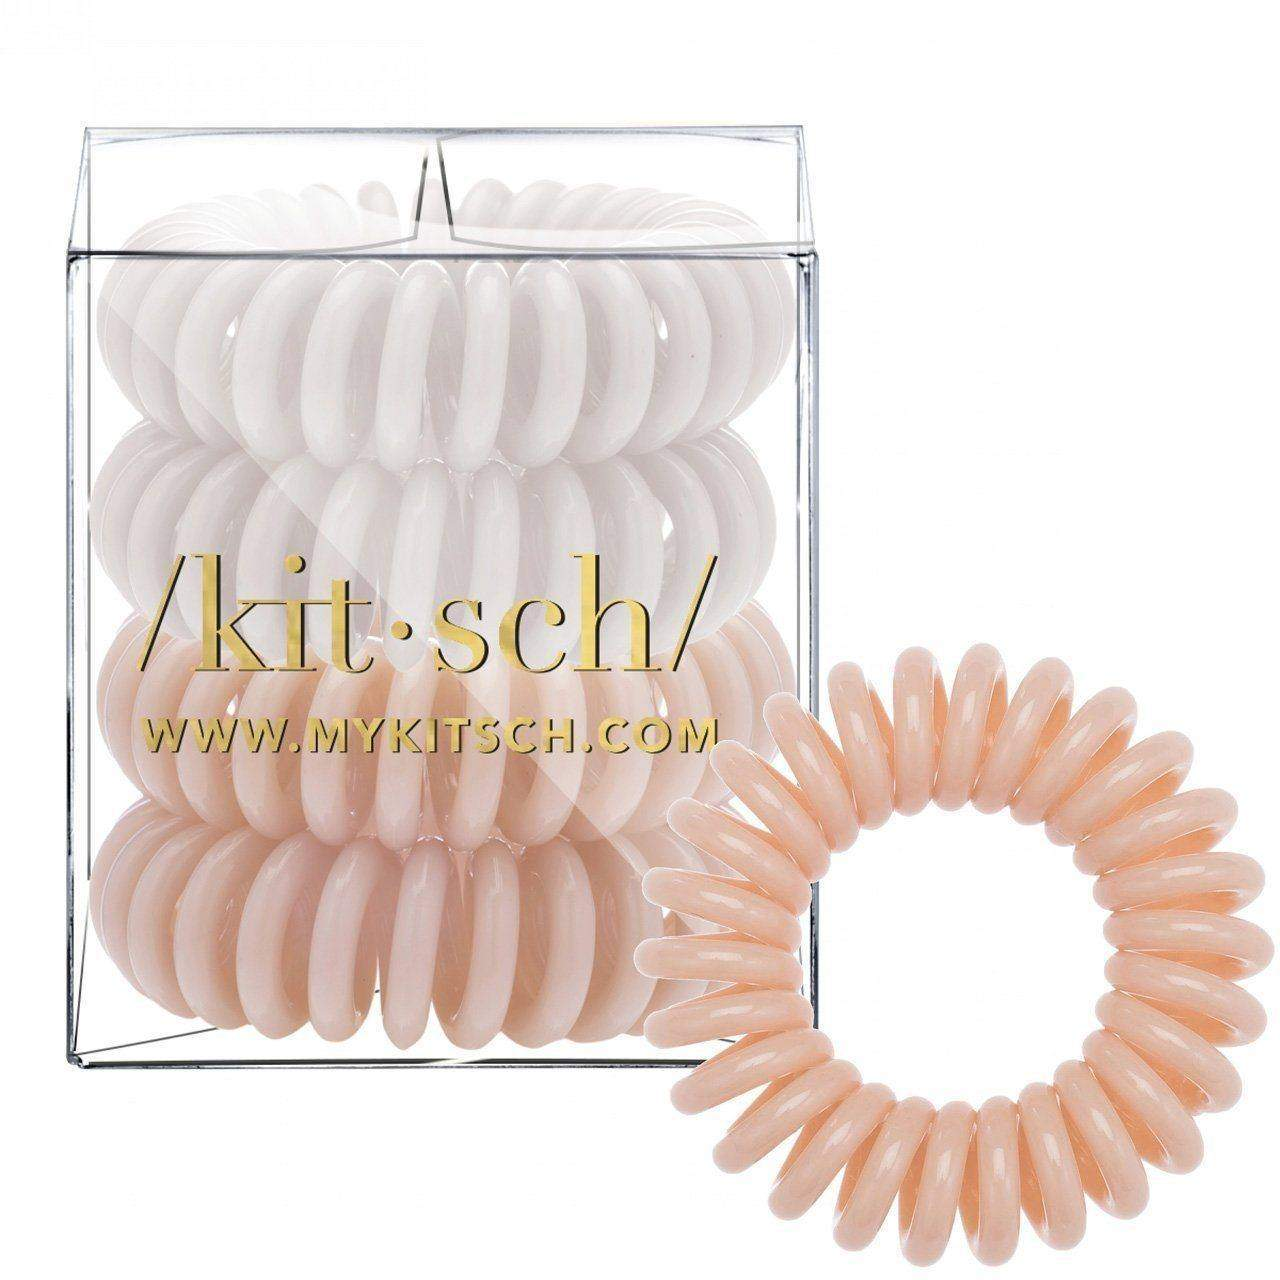 4 Pack Hair Coils - Nude - KITSCH